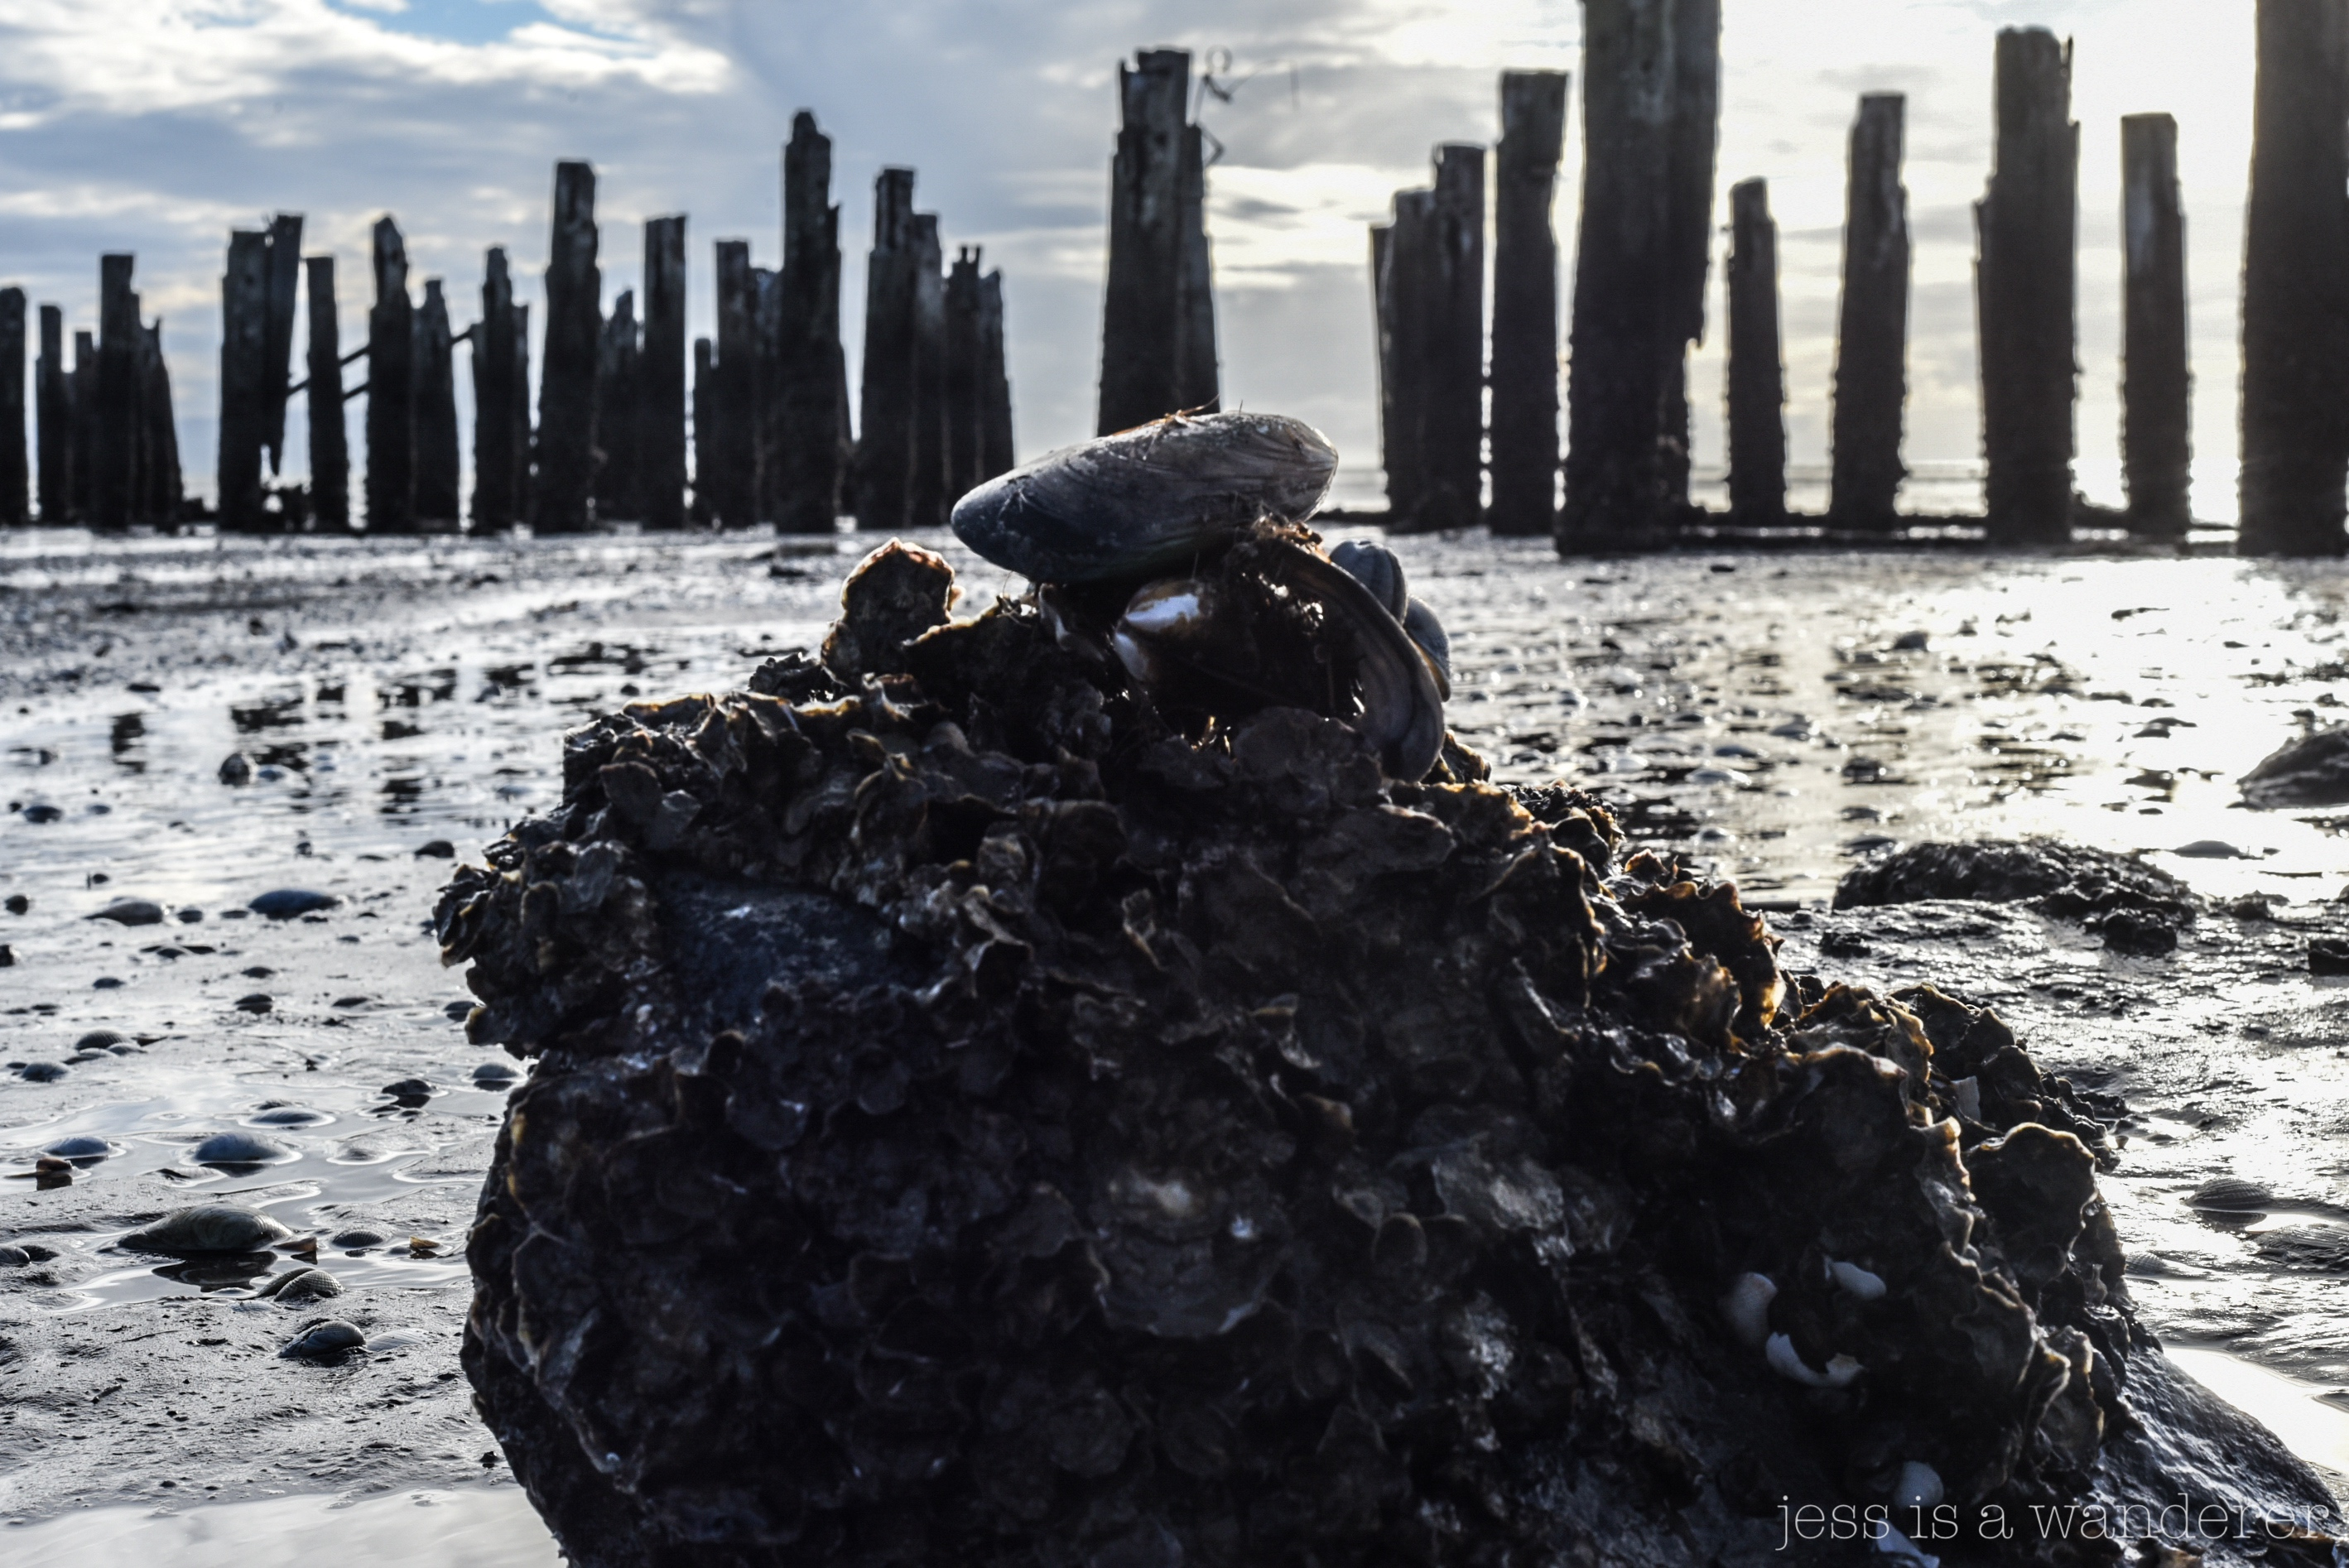 Rocks, shells and posts